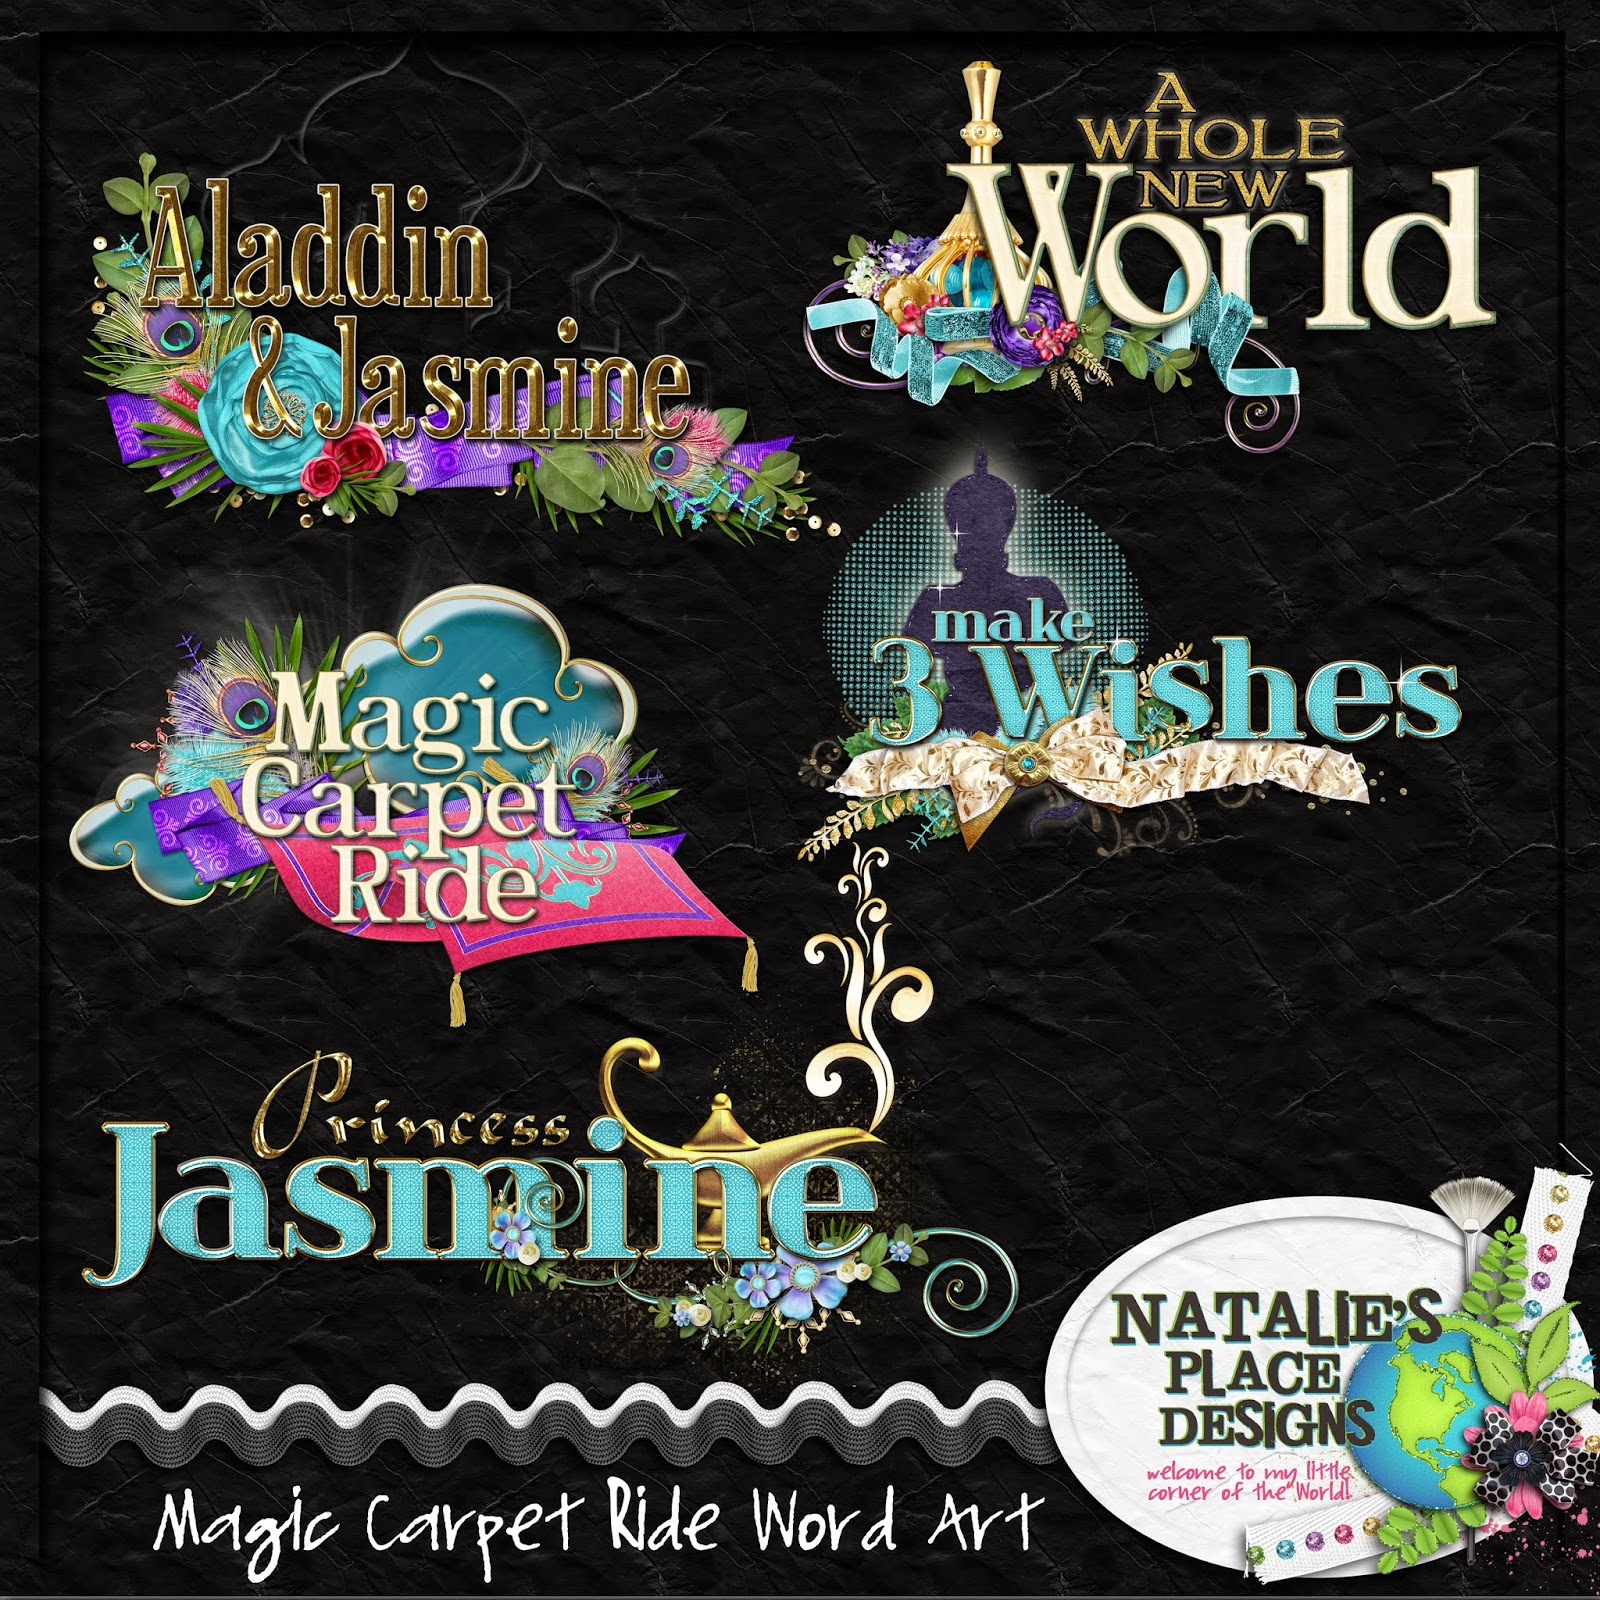 http://www.nataliesplacedesigns.com/store/p479/Magic_Carpet_Ride_Word_Art.html